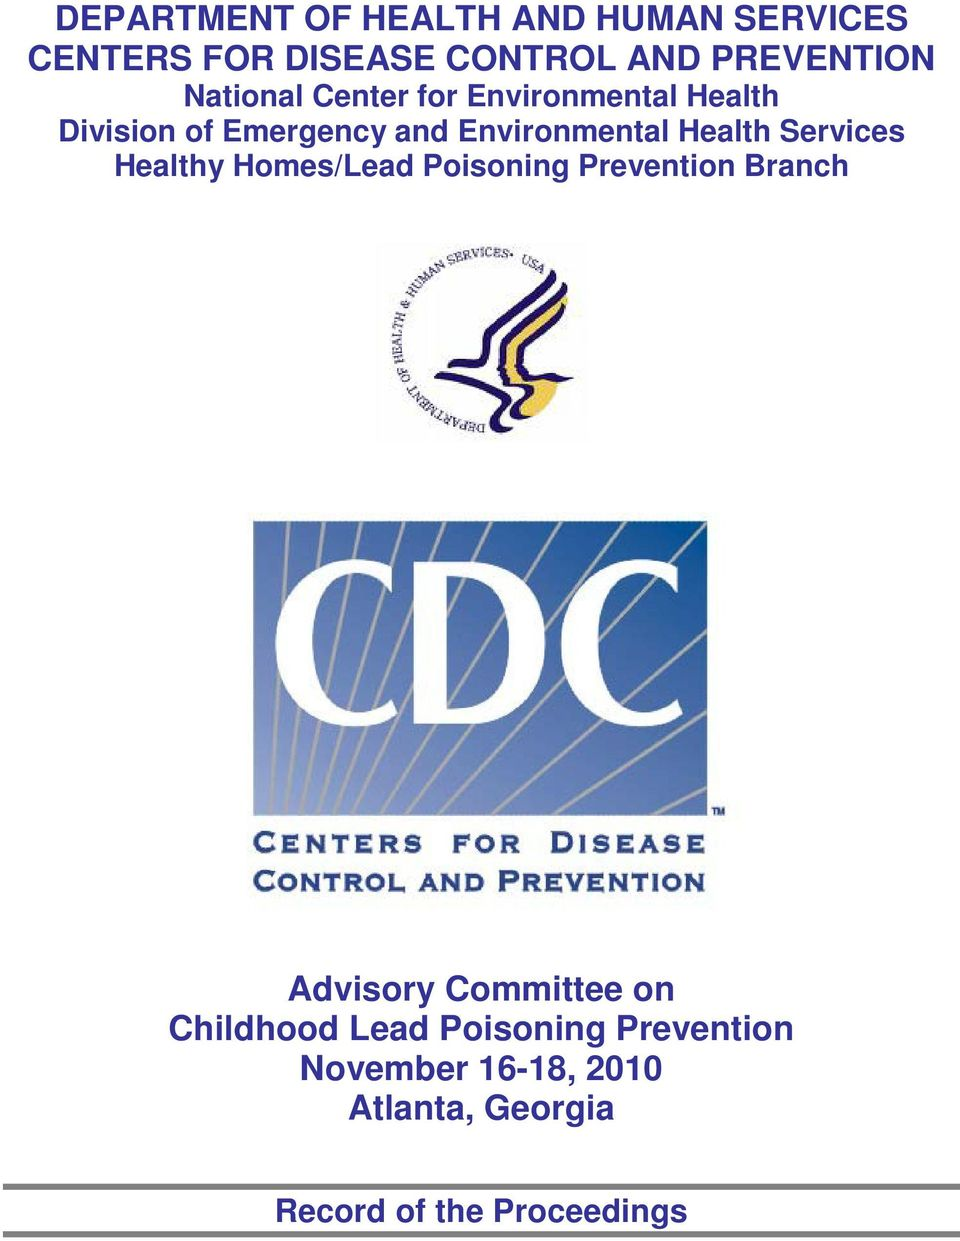 Health Services Healthy Homes/Lead Poisoning Prevention Branch Advisory Committee on